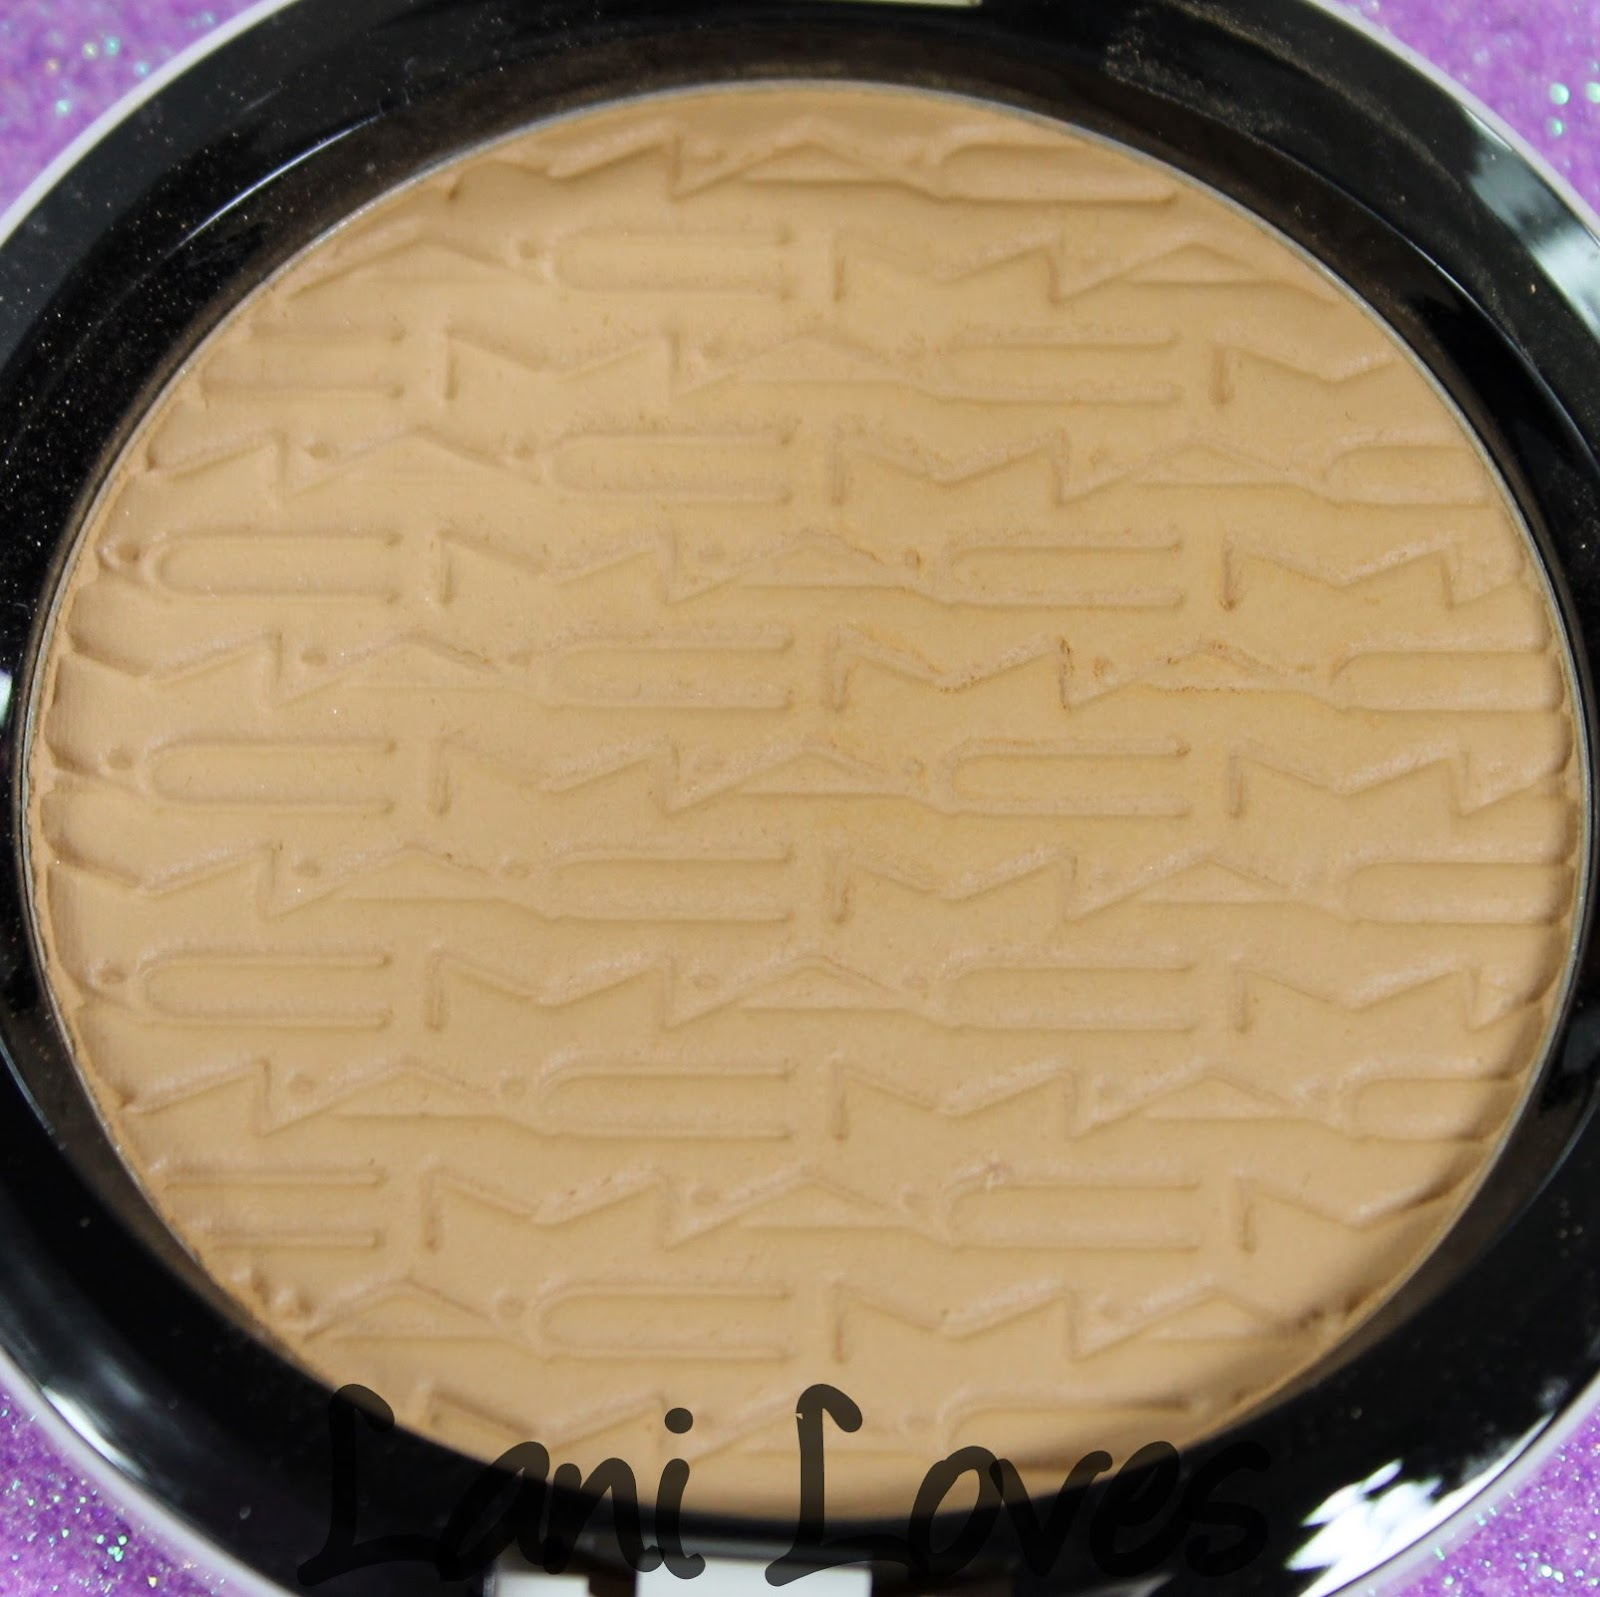 MAC Monday: Surf Baby - Gold-Go-Lightly Studio Careblend Pressed Powder Swatches & Review